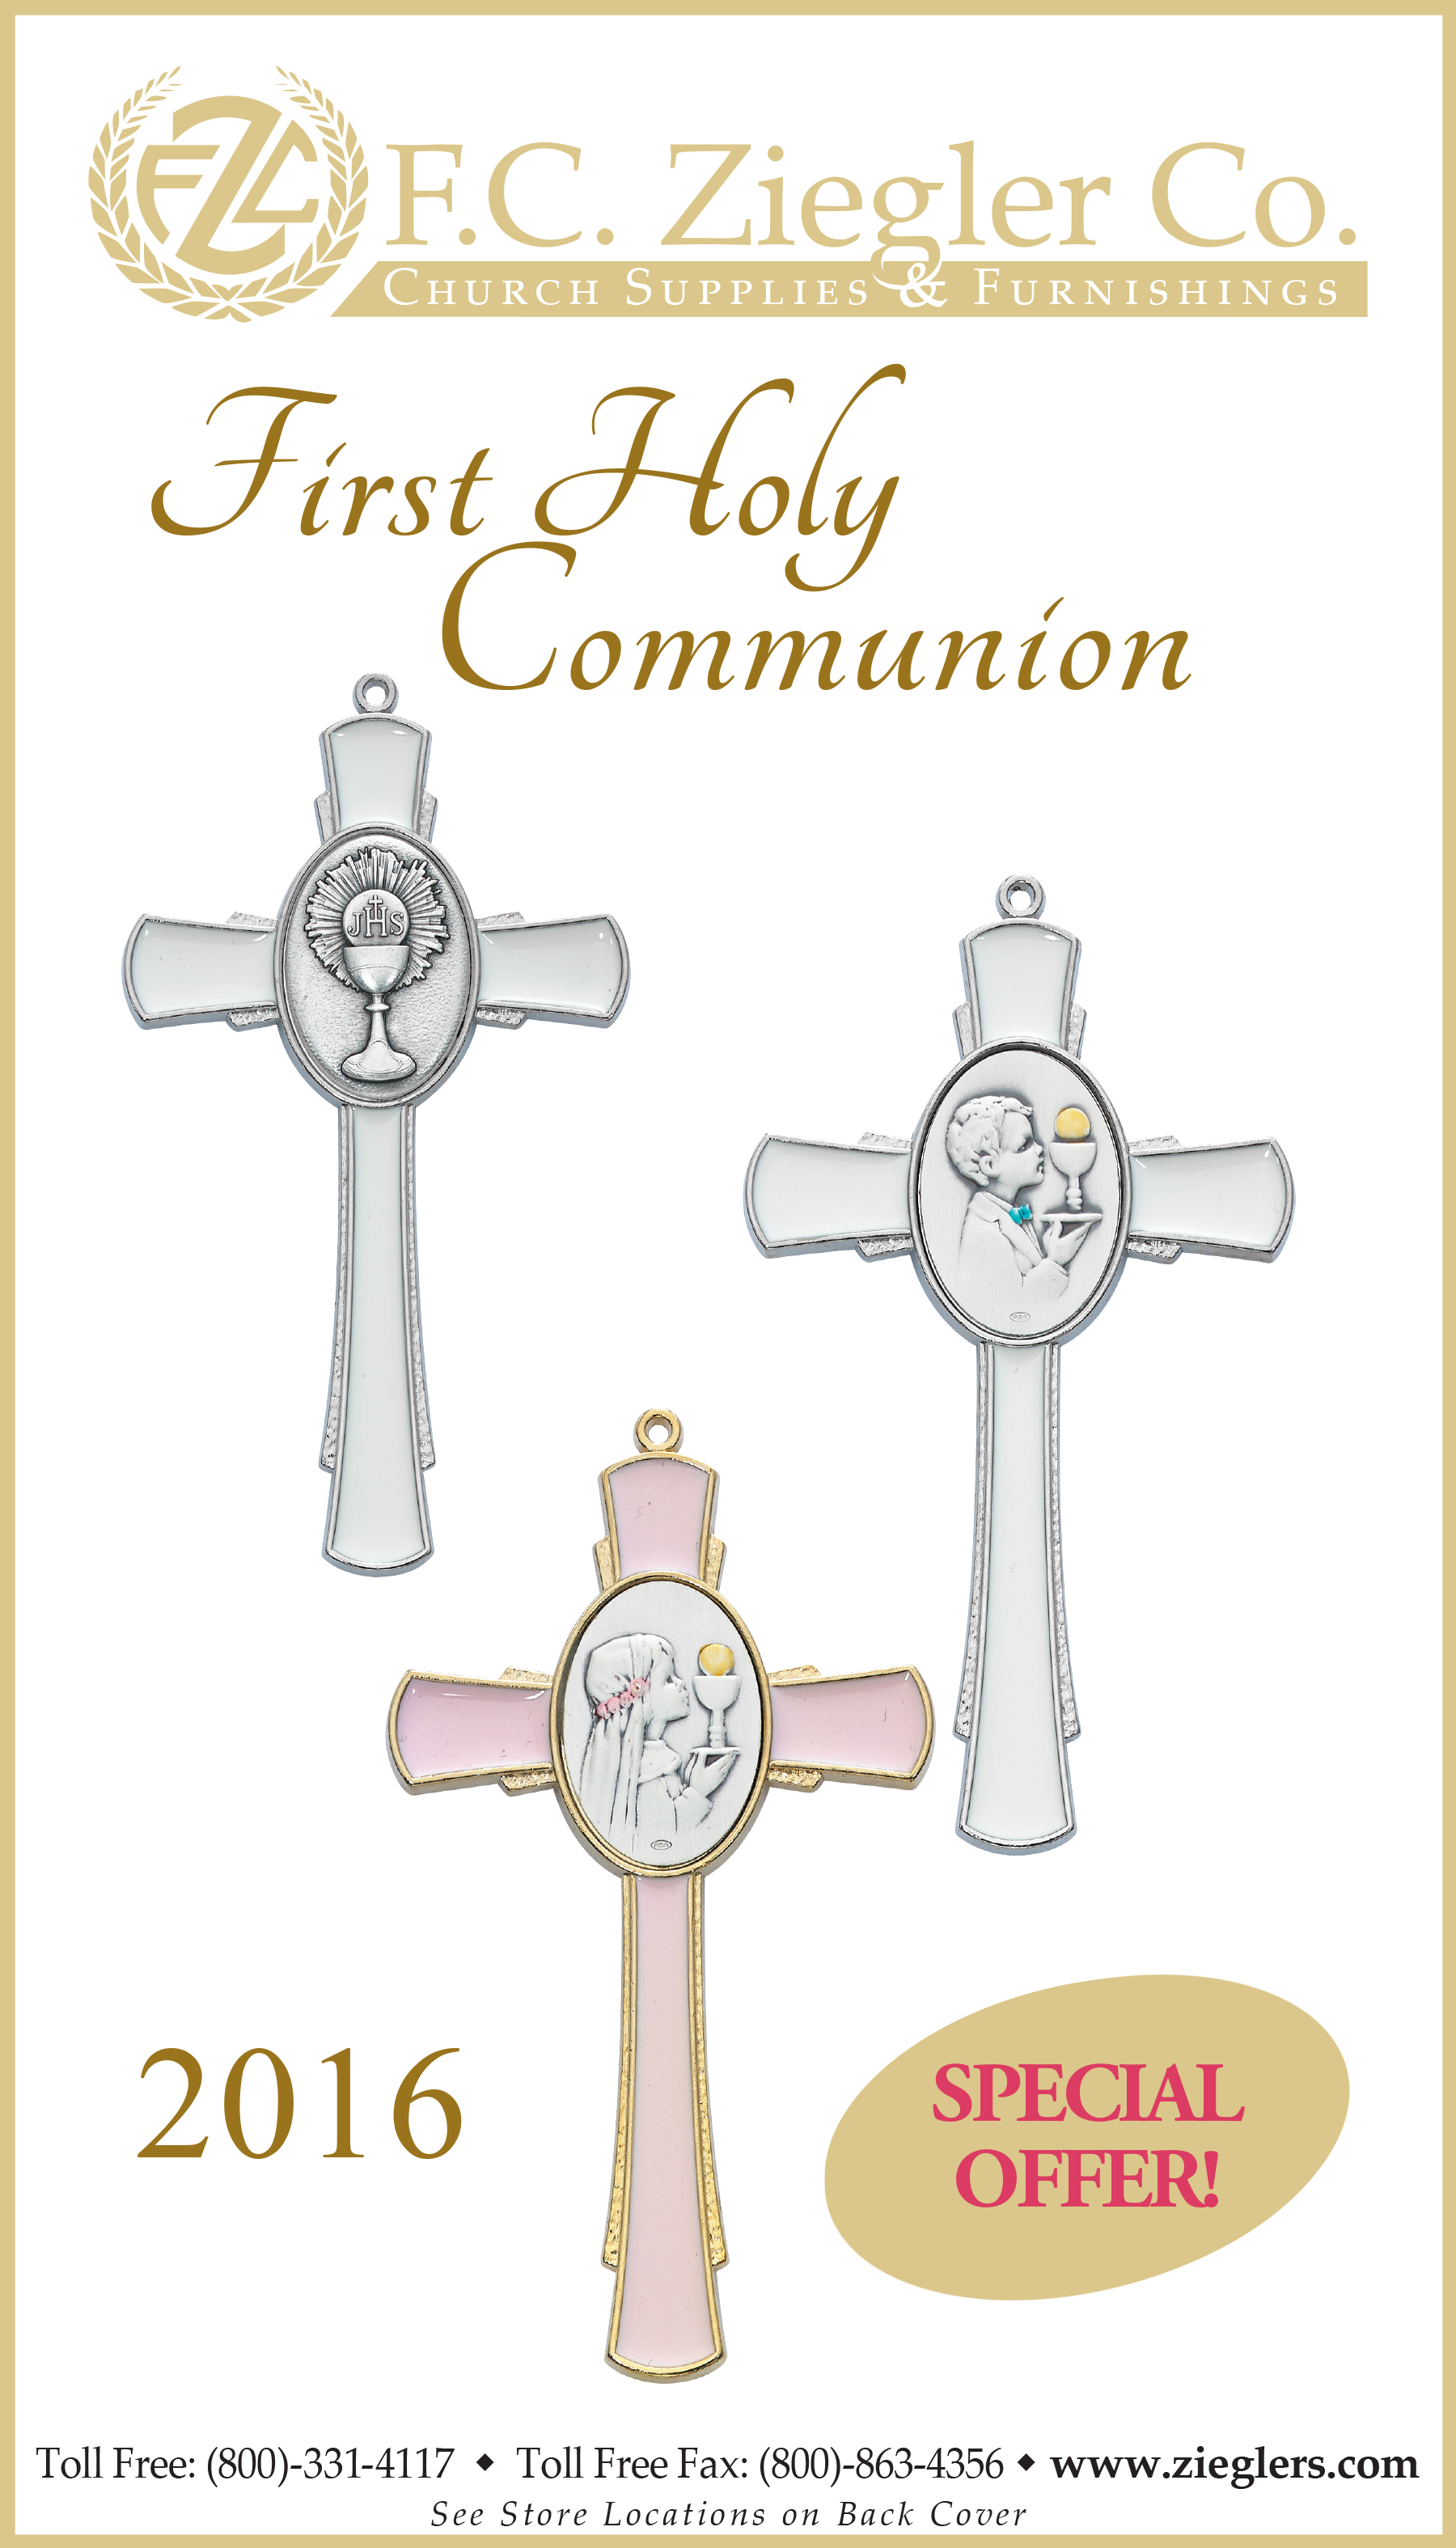 Browse our 2016 1st communion catalog for awesome first communion gift ideas for your son, grandson, grand daughter,niece, nephew, neighbor and friend that include bibles, rosaries, mass books, jewelry and more!